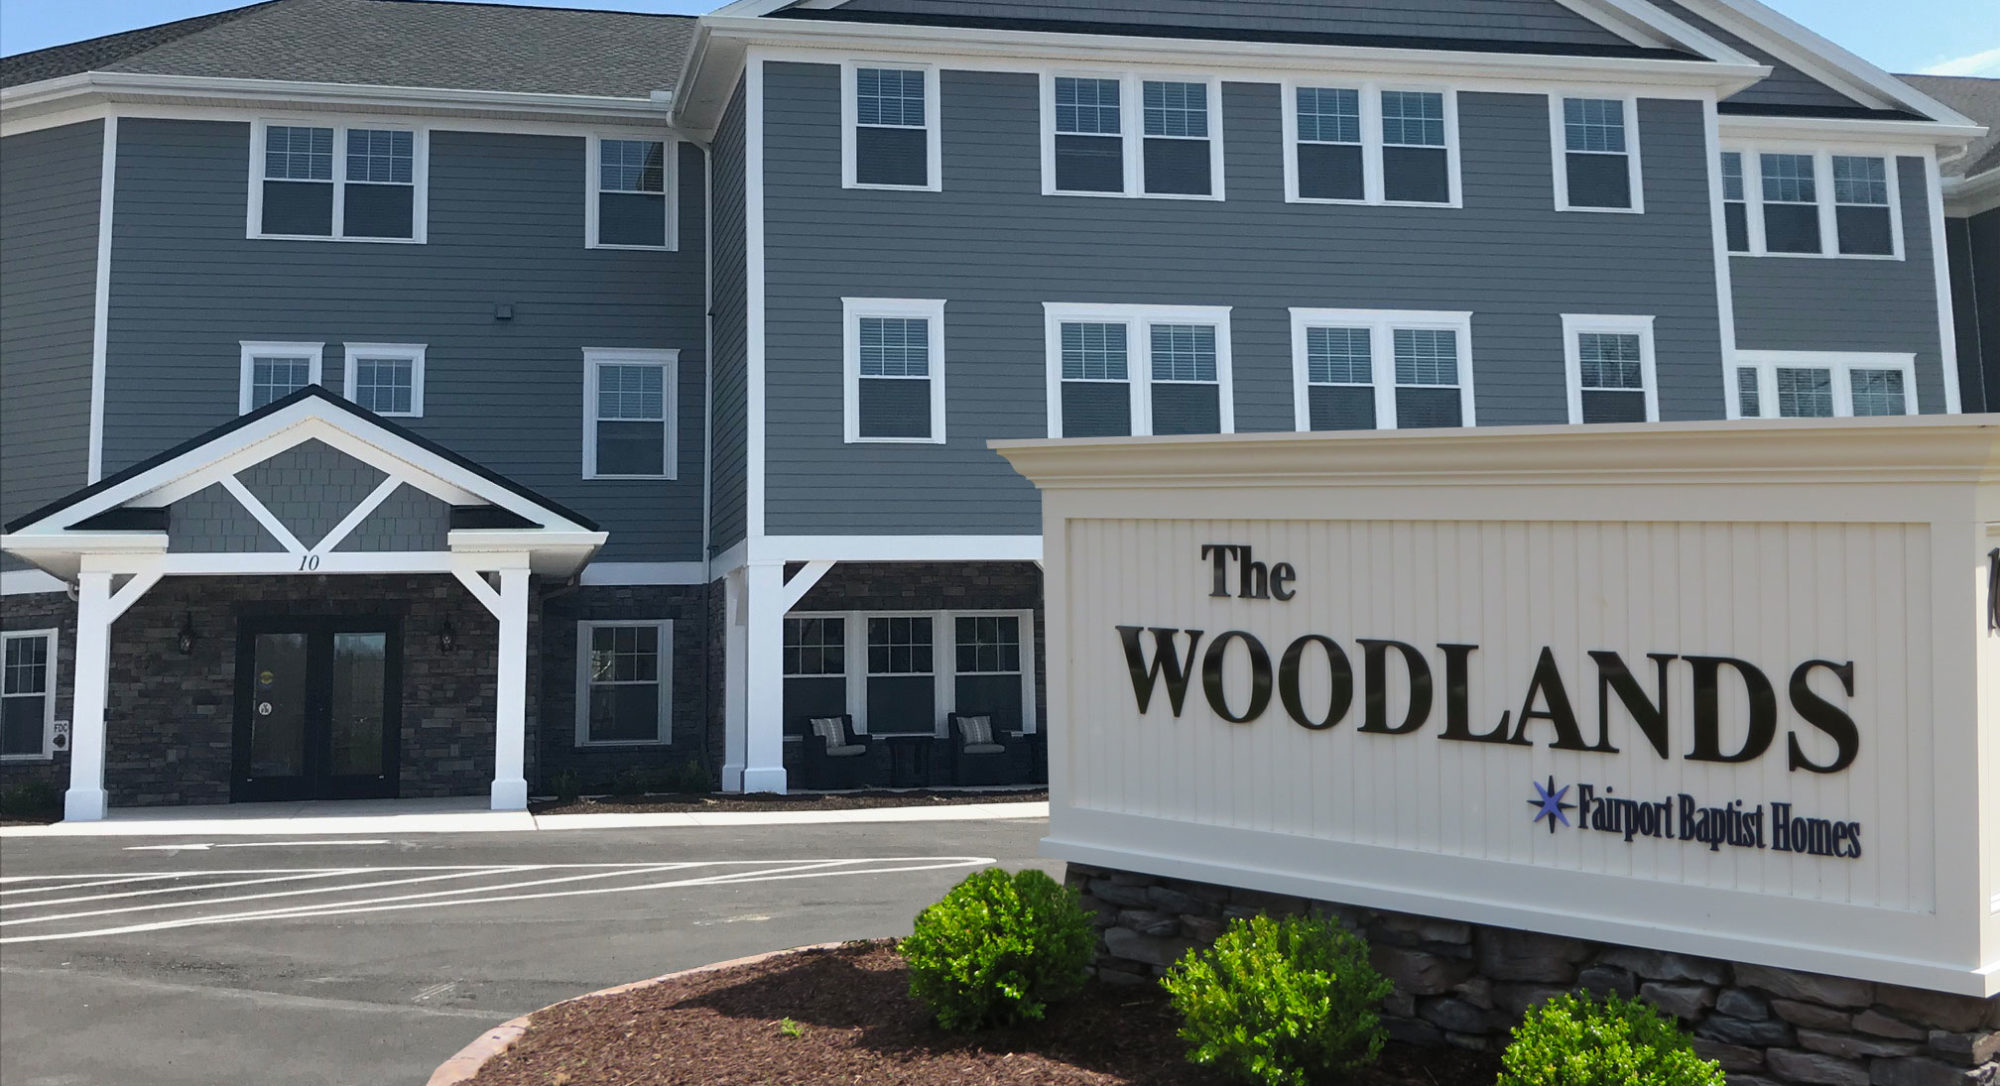 The Woodlands at Fairport Baptist Homes